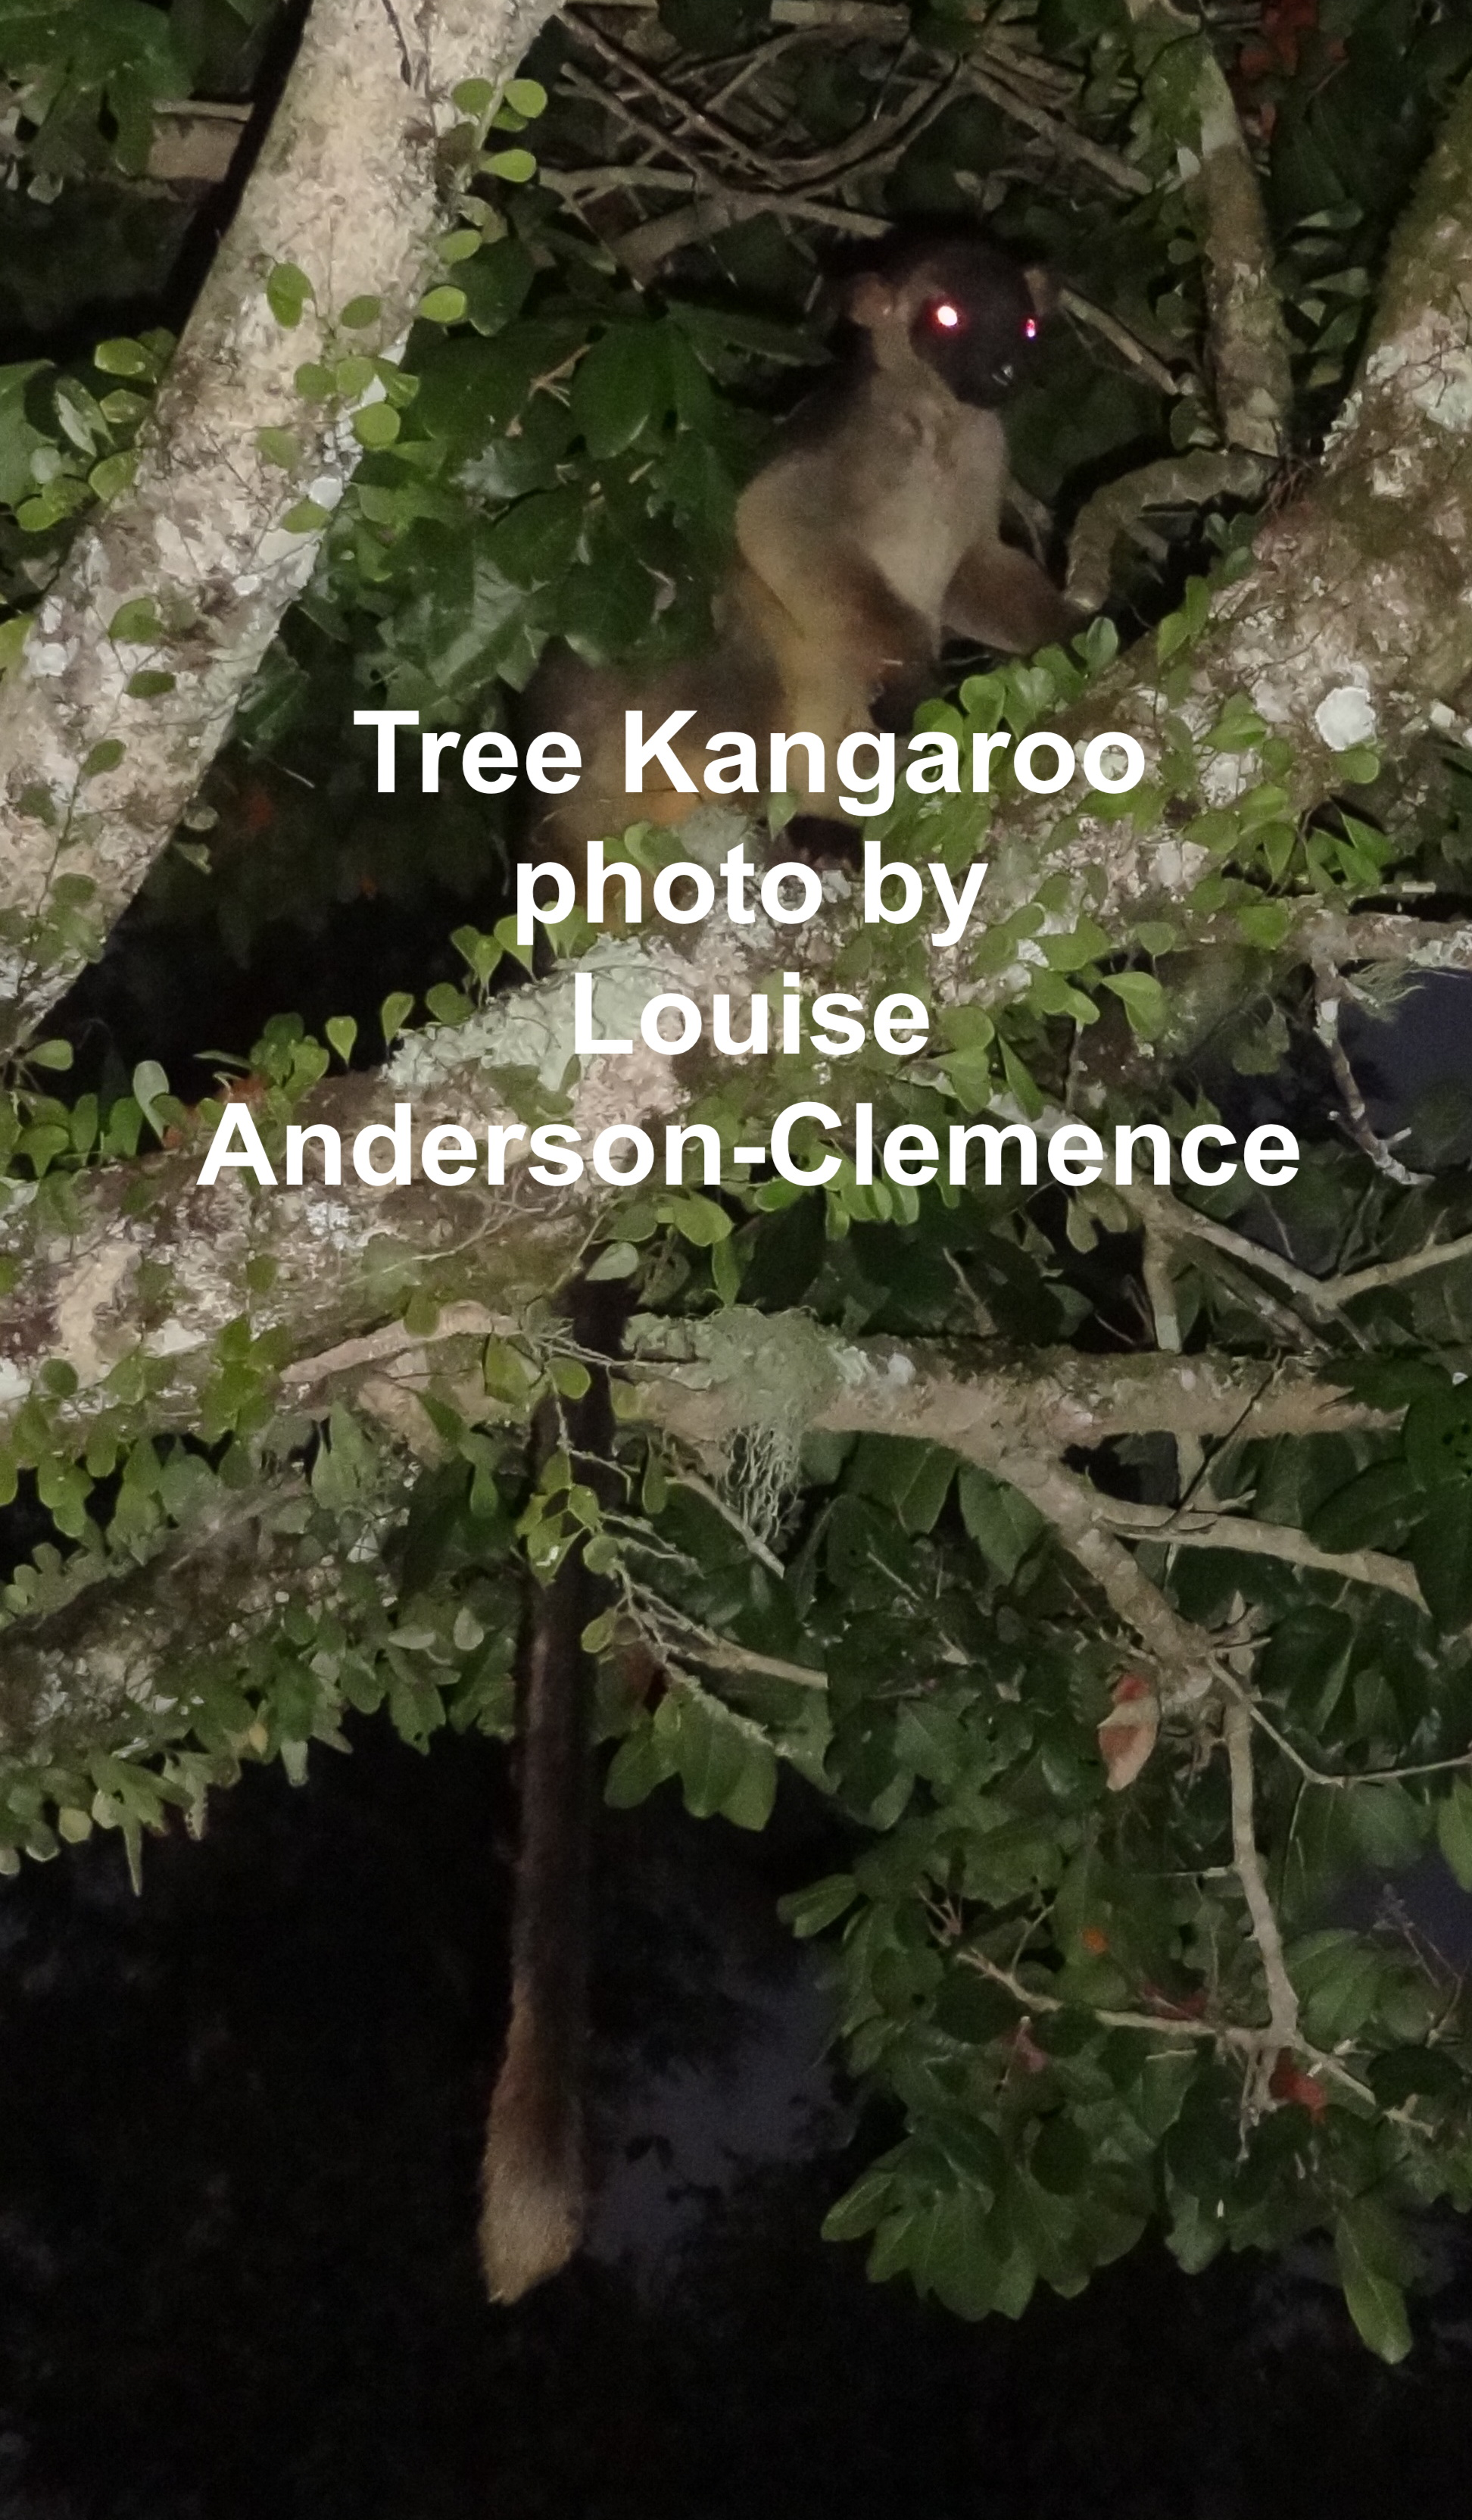 Tree Kangaroo by Louise Anderson-Clemence